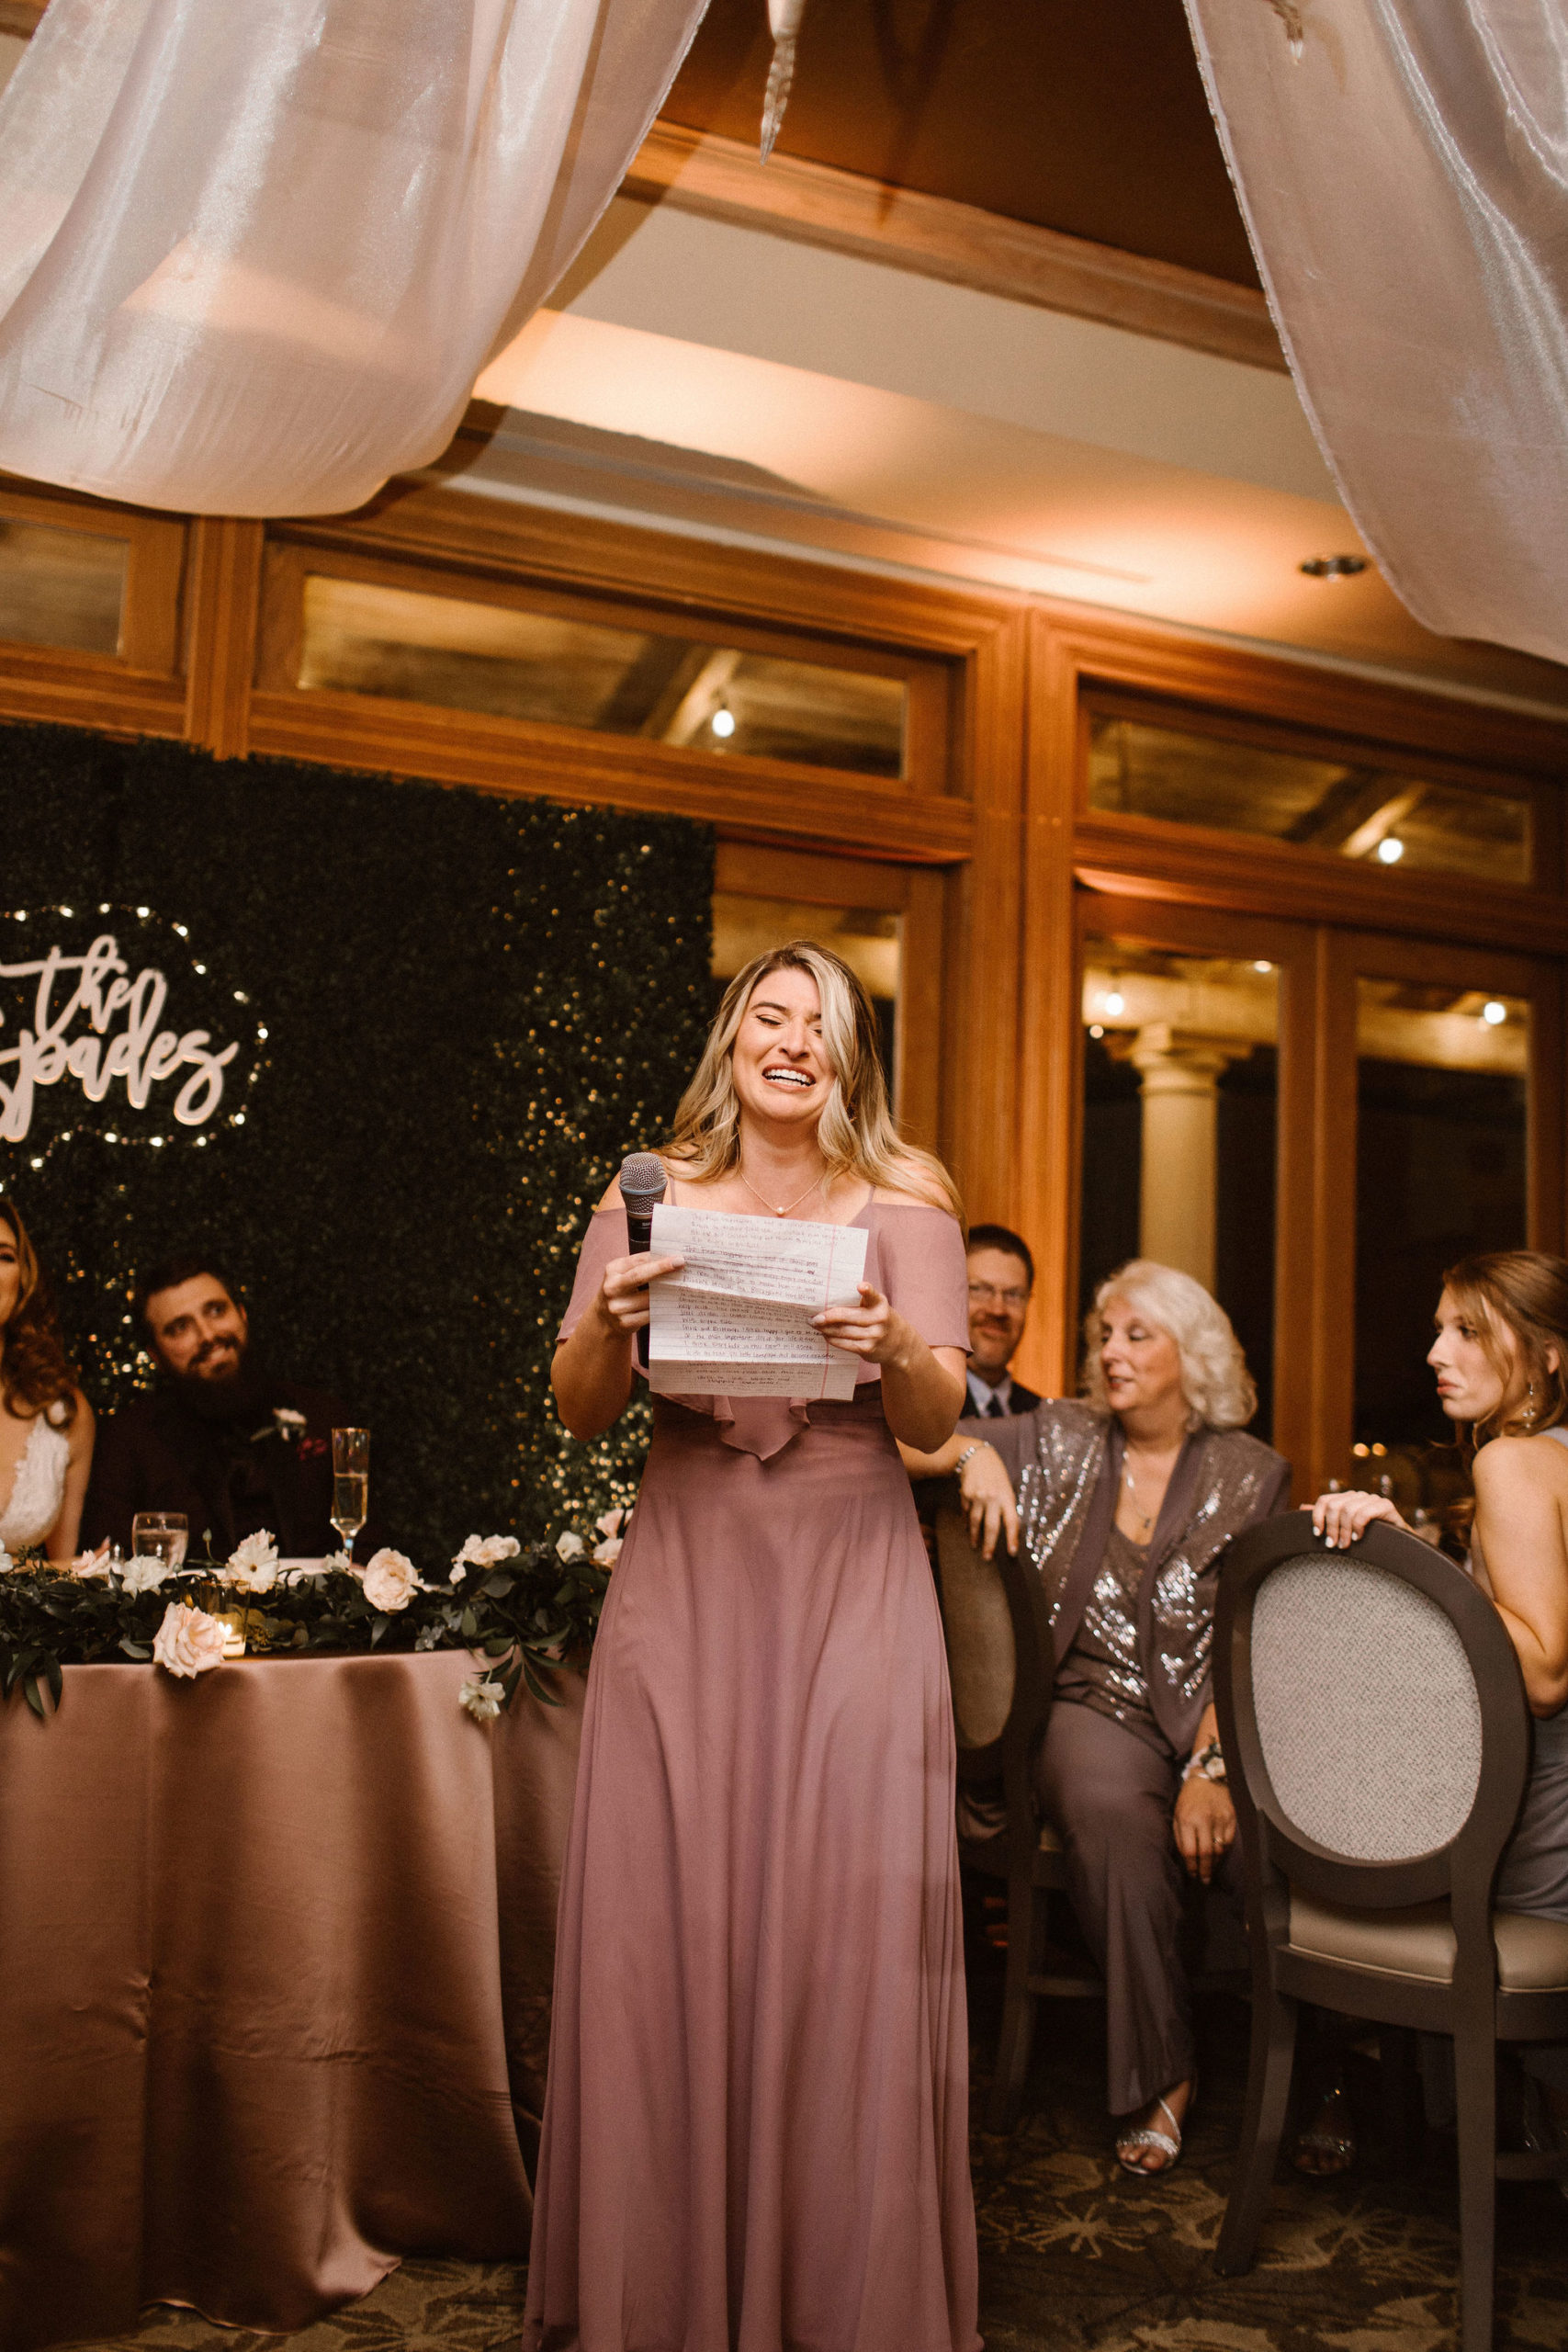 Bridesmaid in mauve dress giving speech to bride and groom